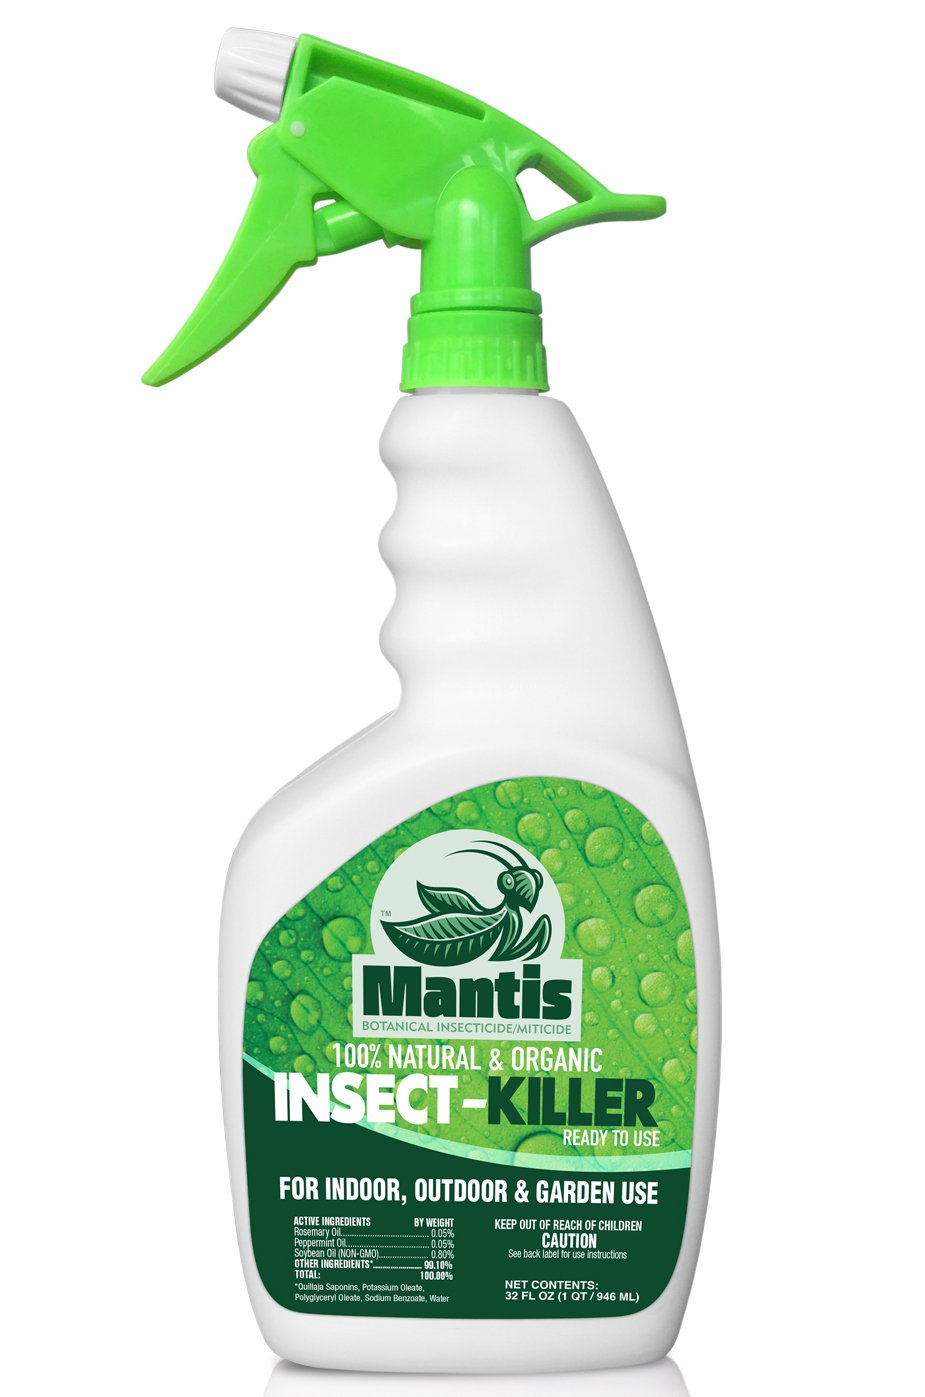 Mantis MPP003 Botanical Insecticide/Miticide Review